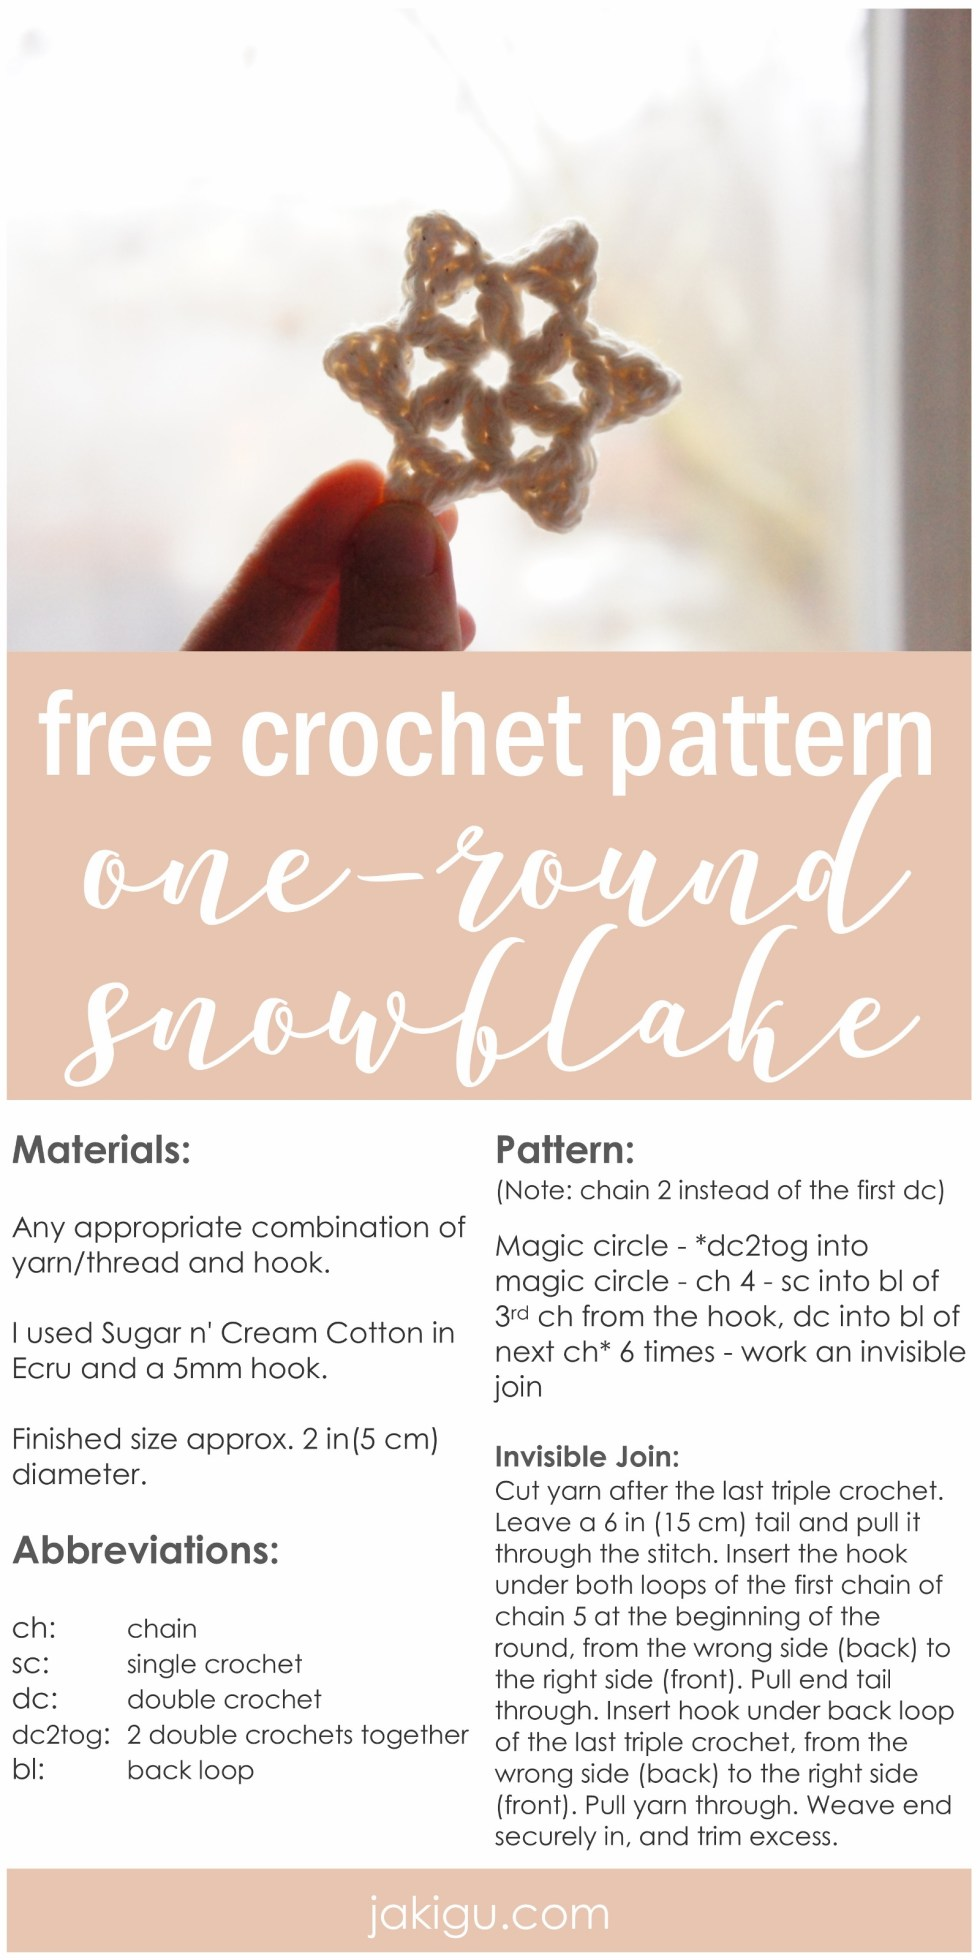 Quick and easy winter crochet project - a perfect yarn buster.